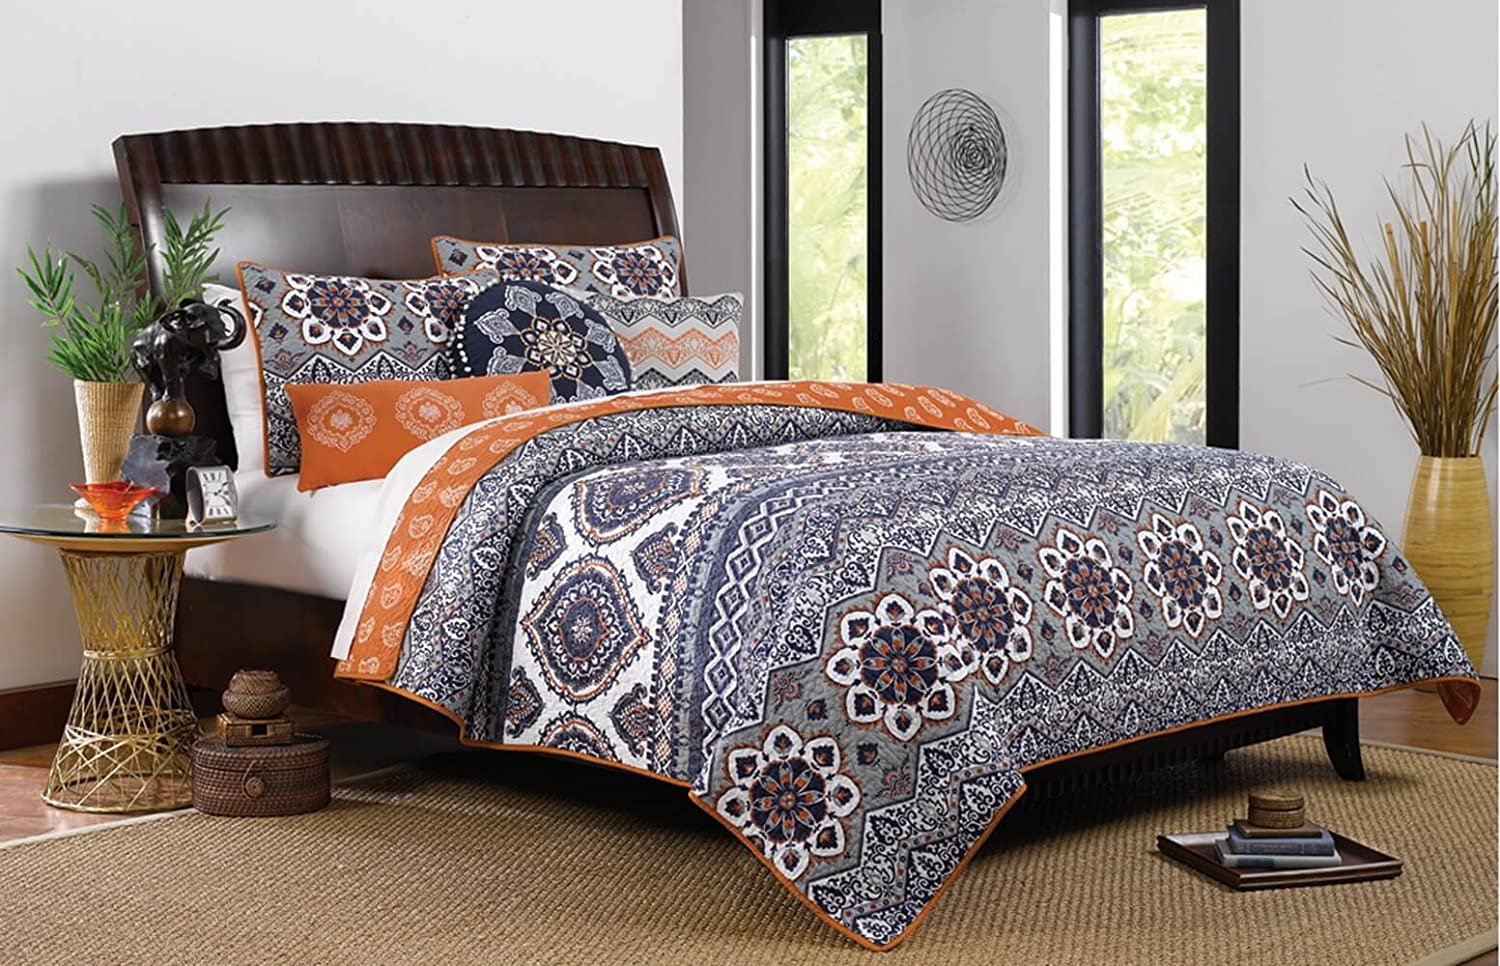 Boho Chic Moroccan Paisley Pattern Grey Orange Cotton 3 Piece Full/Queen Size Quilt Bedding Set